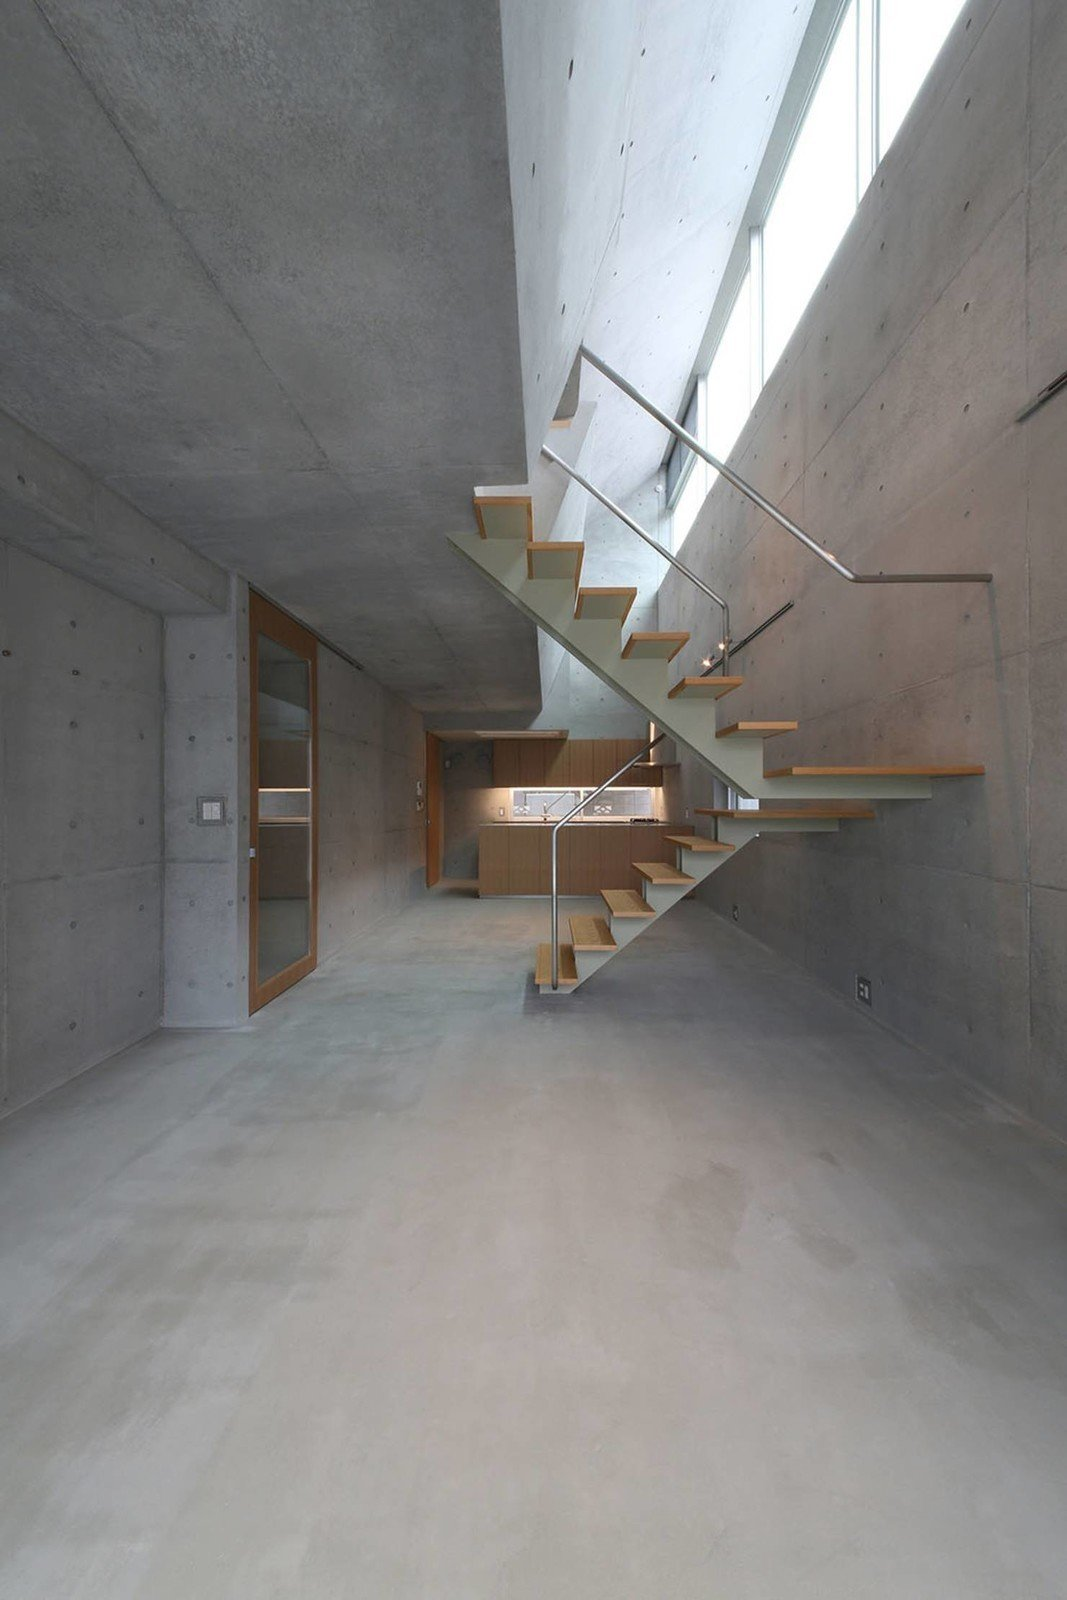 Staircase, Metal Railing, and Wood Tread The interior consists entirely of exposed concrete accented by wood. The ground floor features double-height ceilings that maximize natural light from the lightwells above.  Photo 6 of 25 in 25 Modern Homes That Kill it With Concrete from Material Spotlight: 10 Killer Concrete Homes